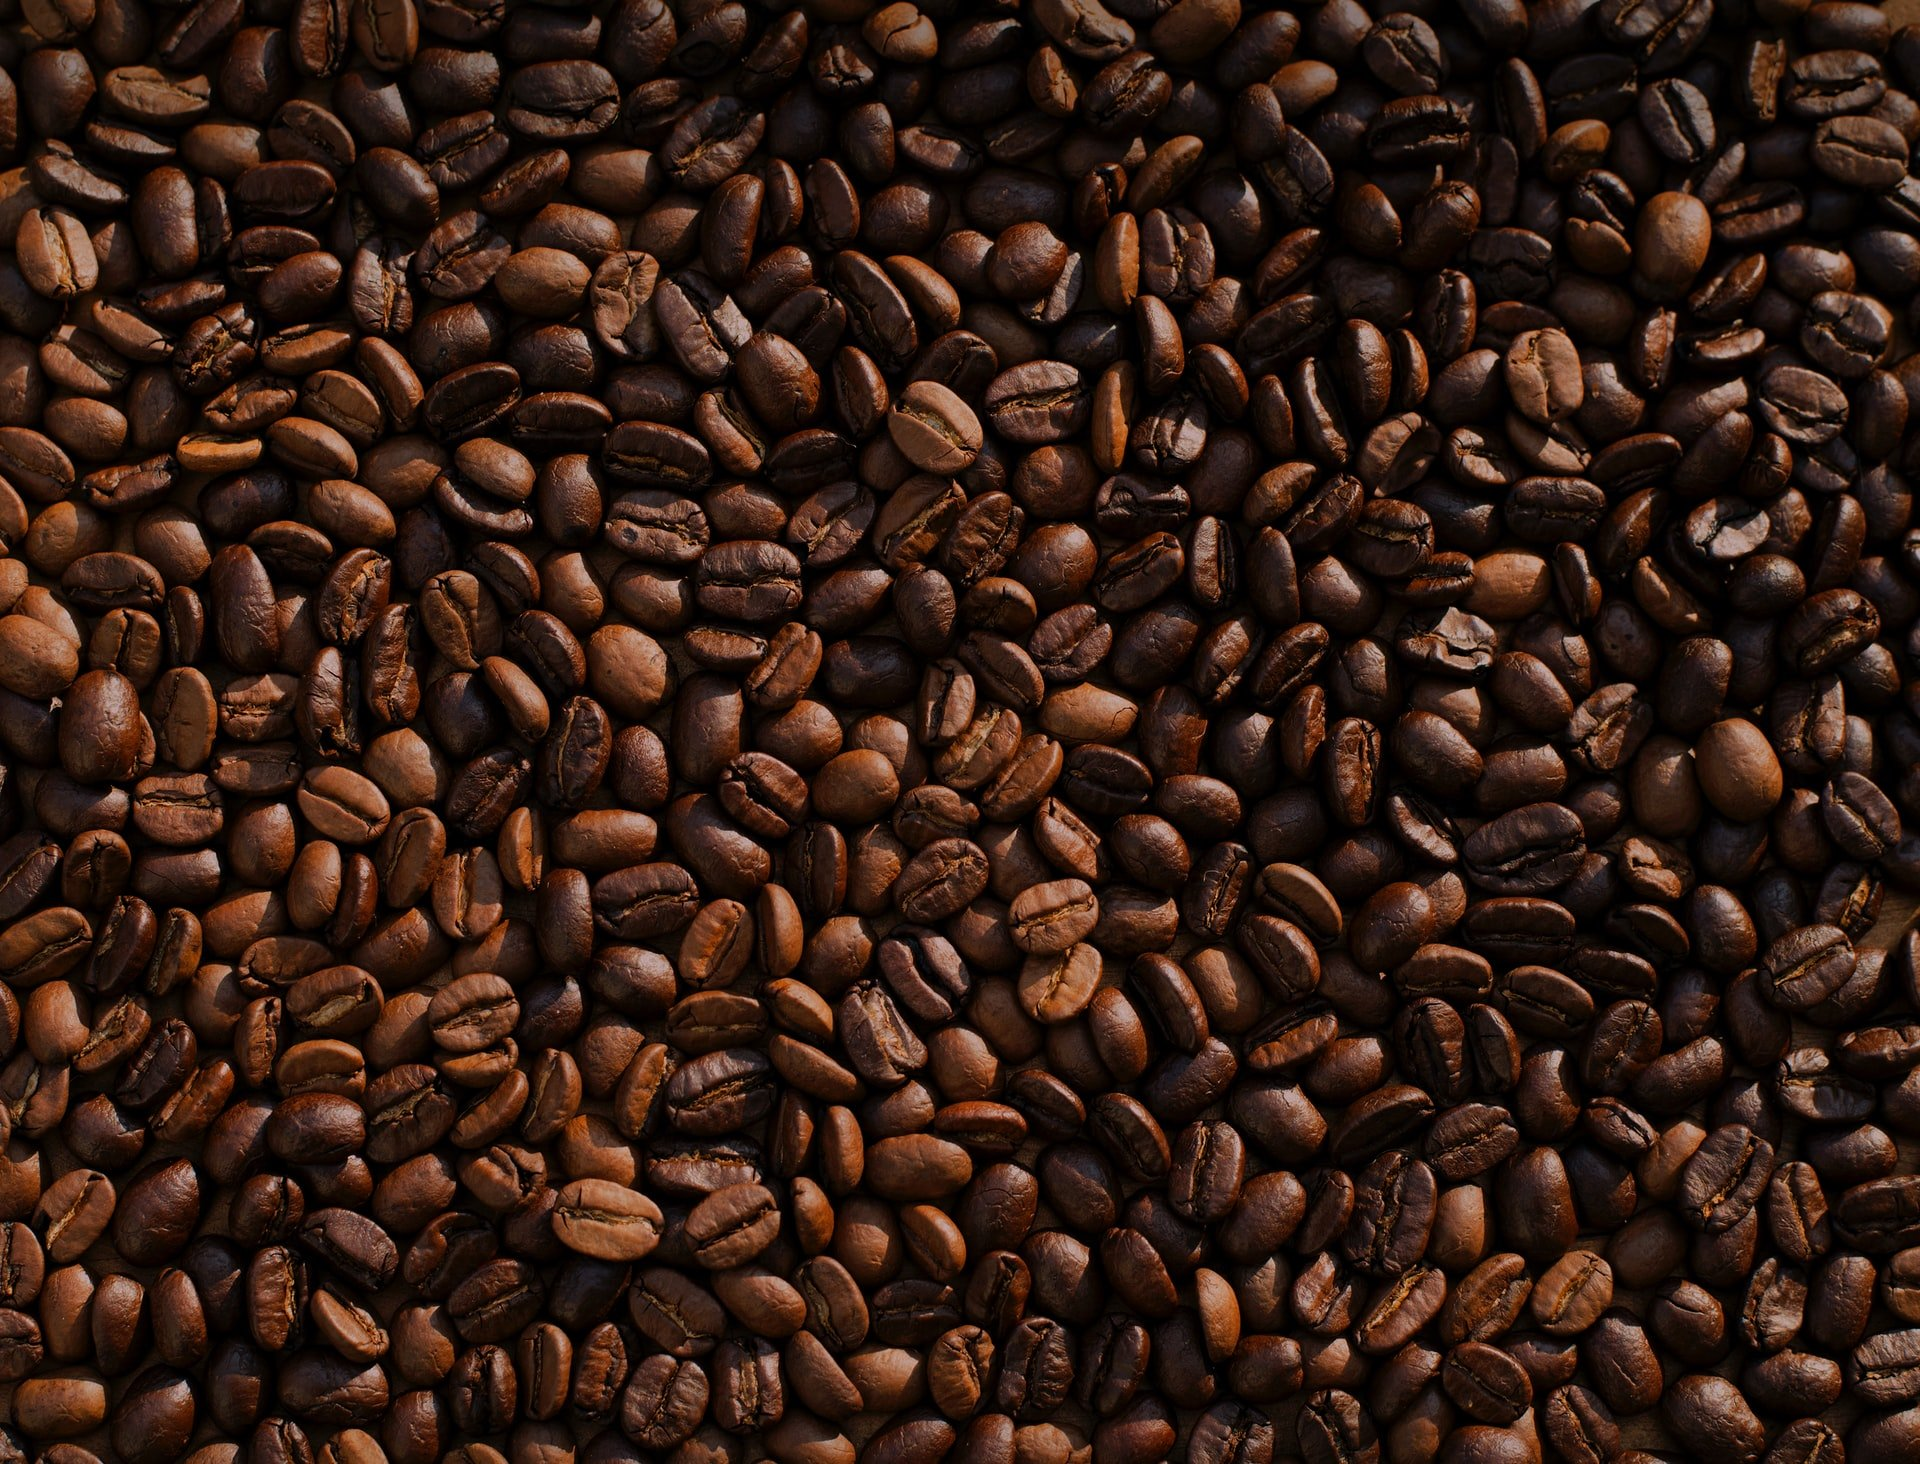 Nescafé Ricoffy Goes Responsible With Ethically Sourced Coffee Beans